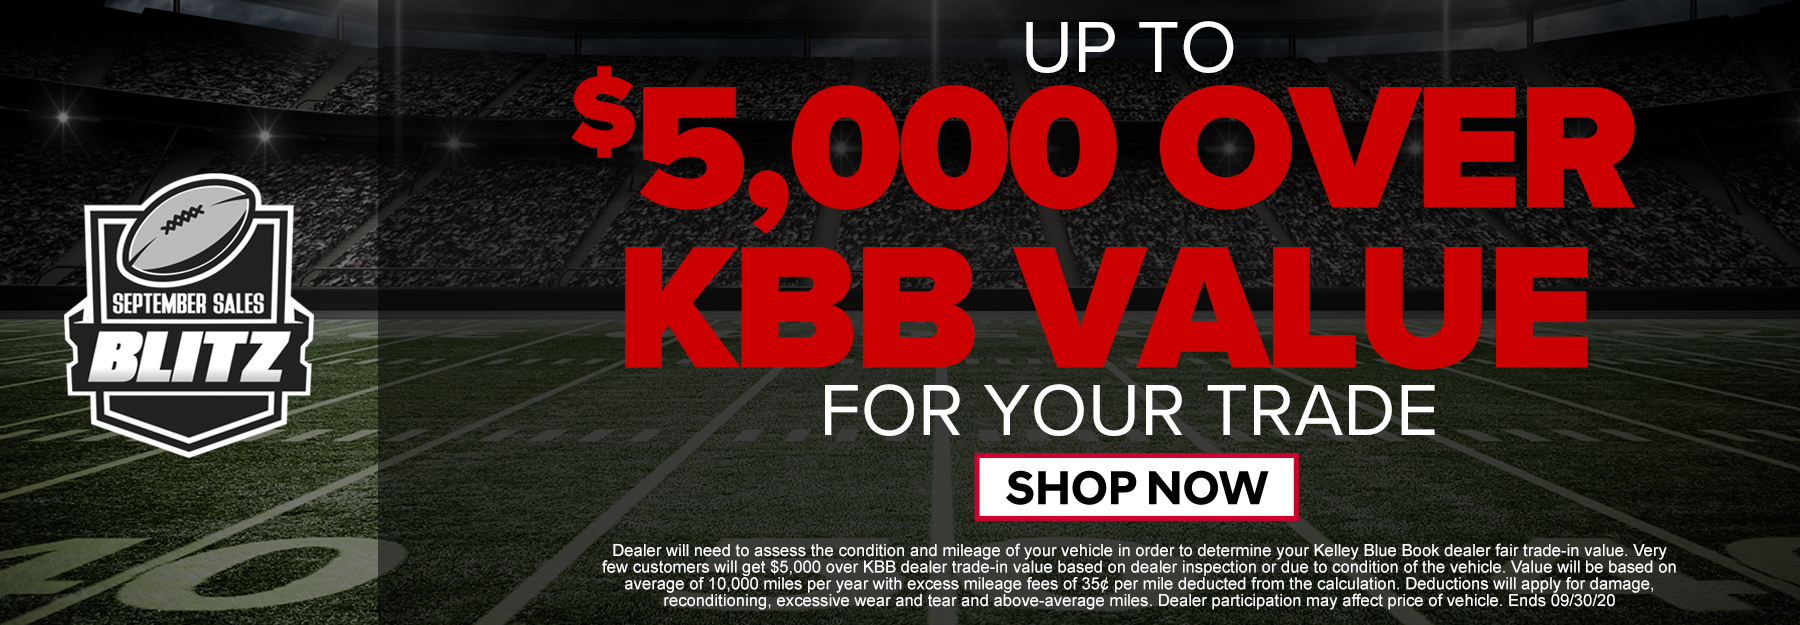 up to $5000 over KBB